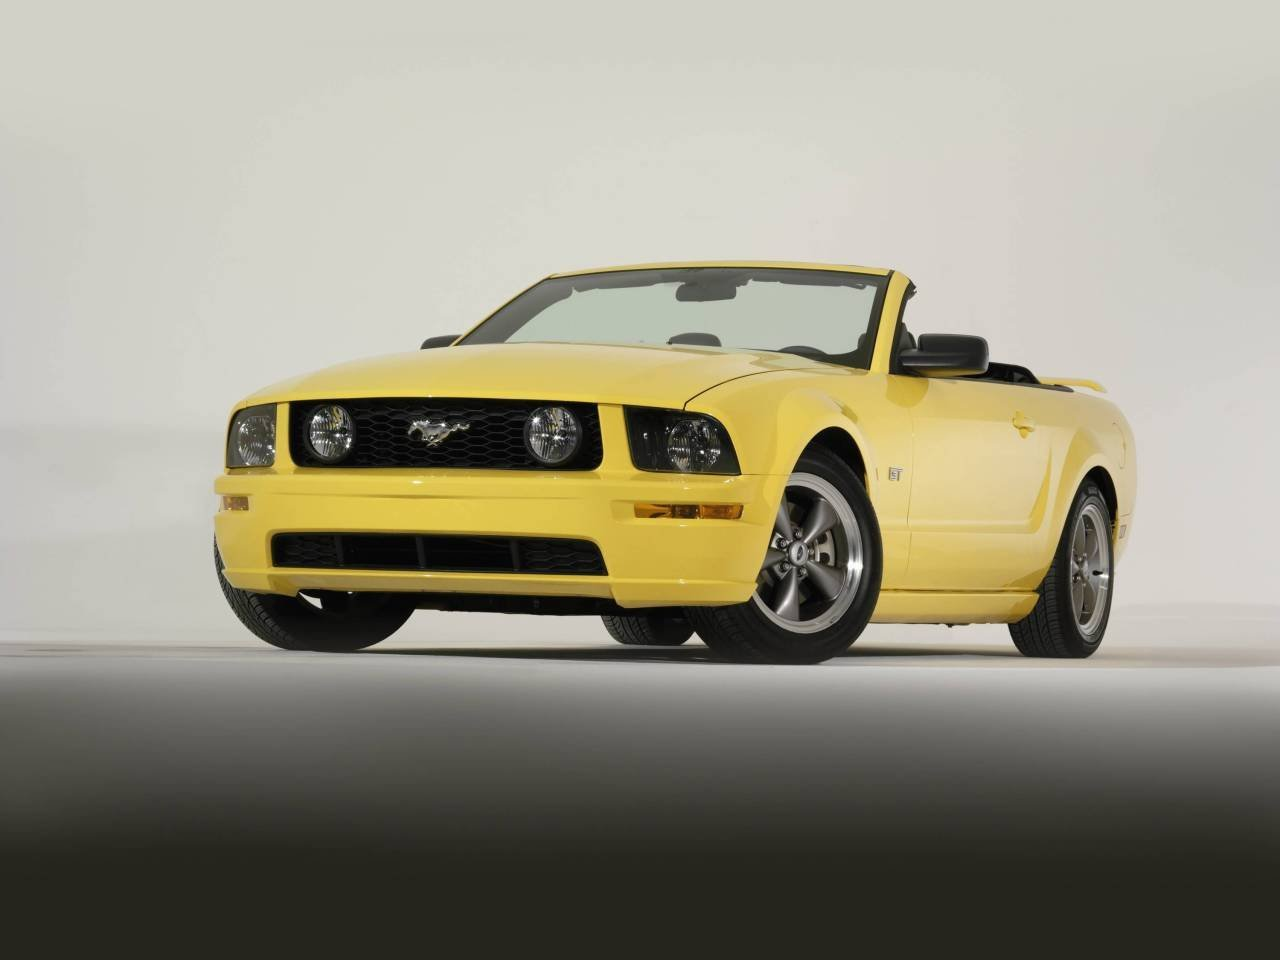 Amazon.com: Ford Mustang GT Convertible Car Art Poster Print on 10 ...